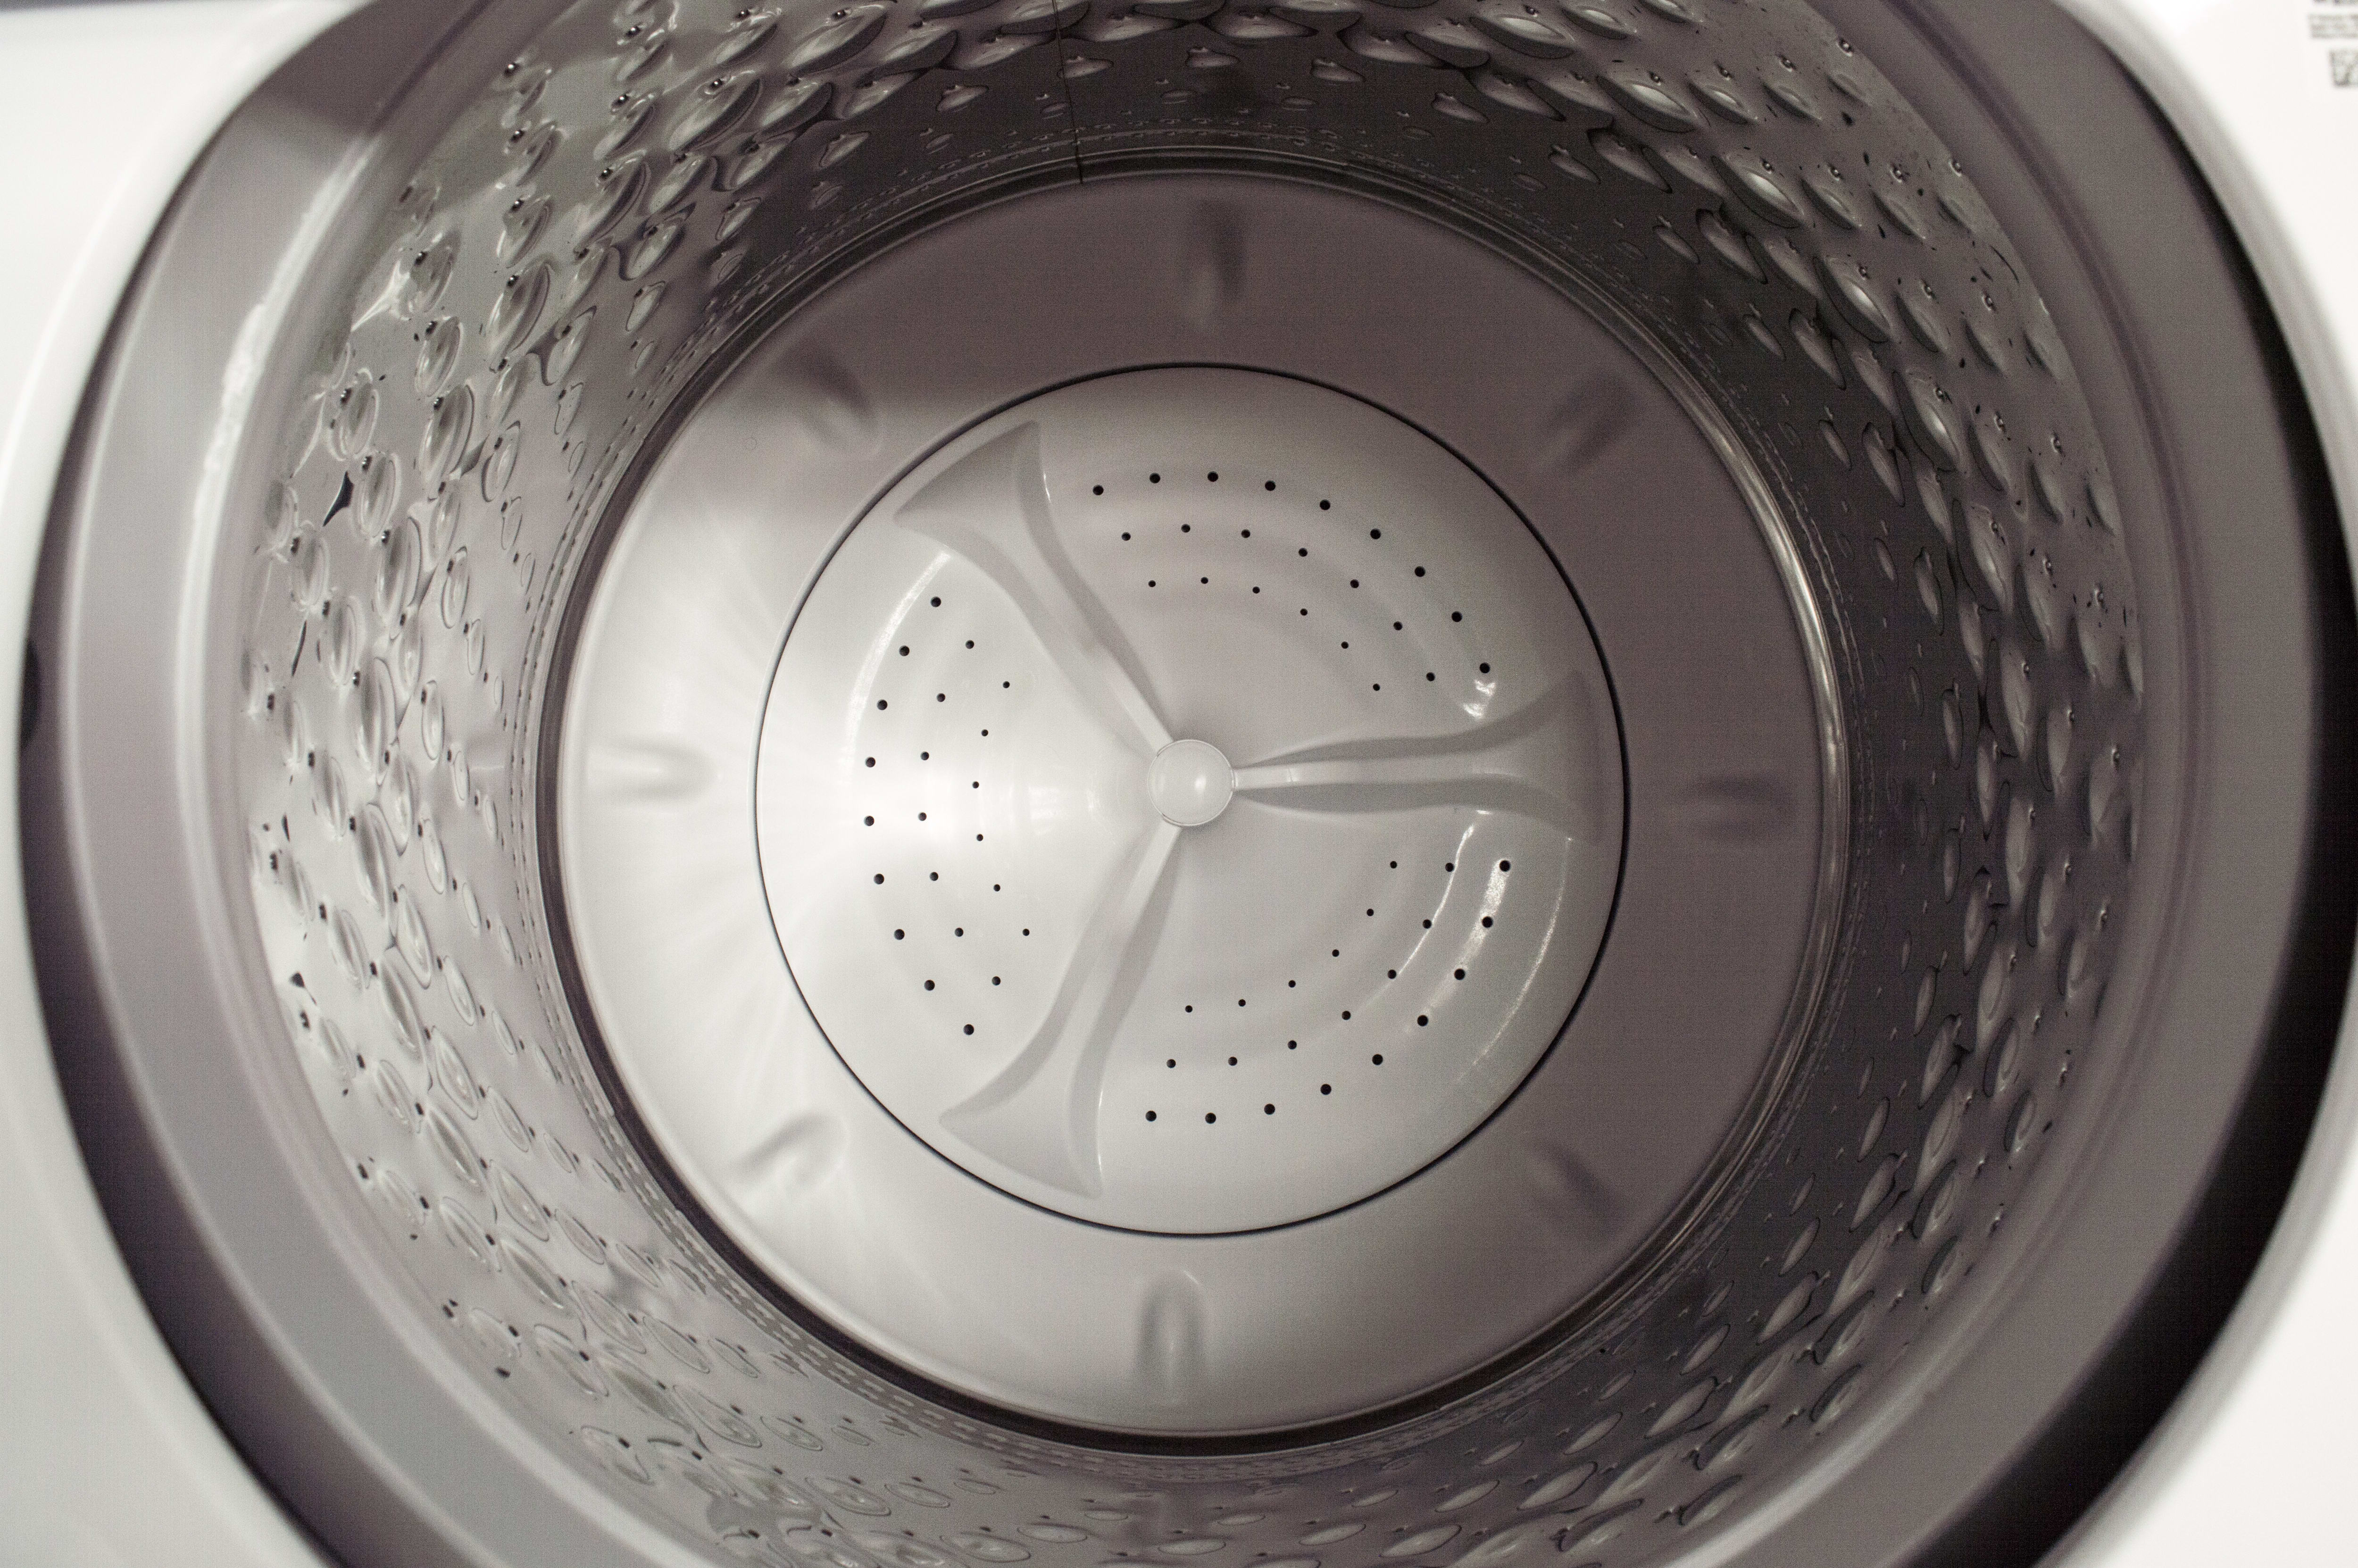 The low-profile impeller helps move your laundry more efficiently.